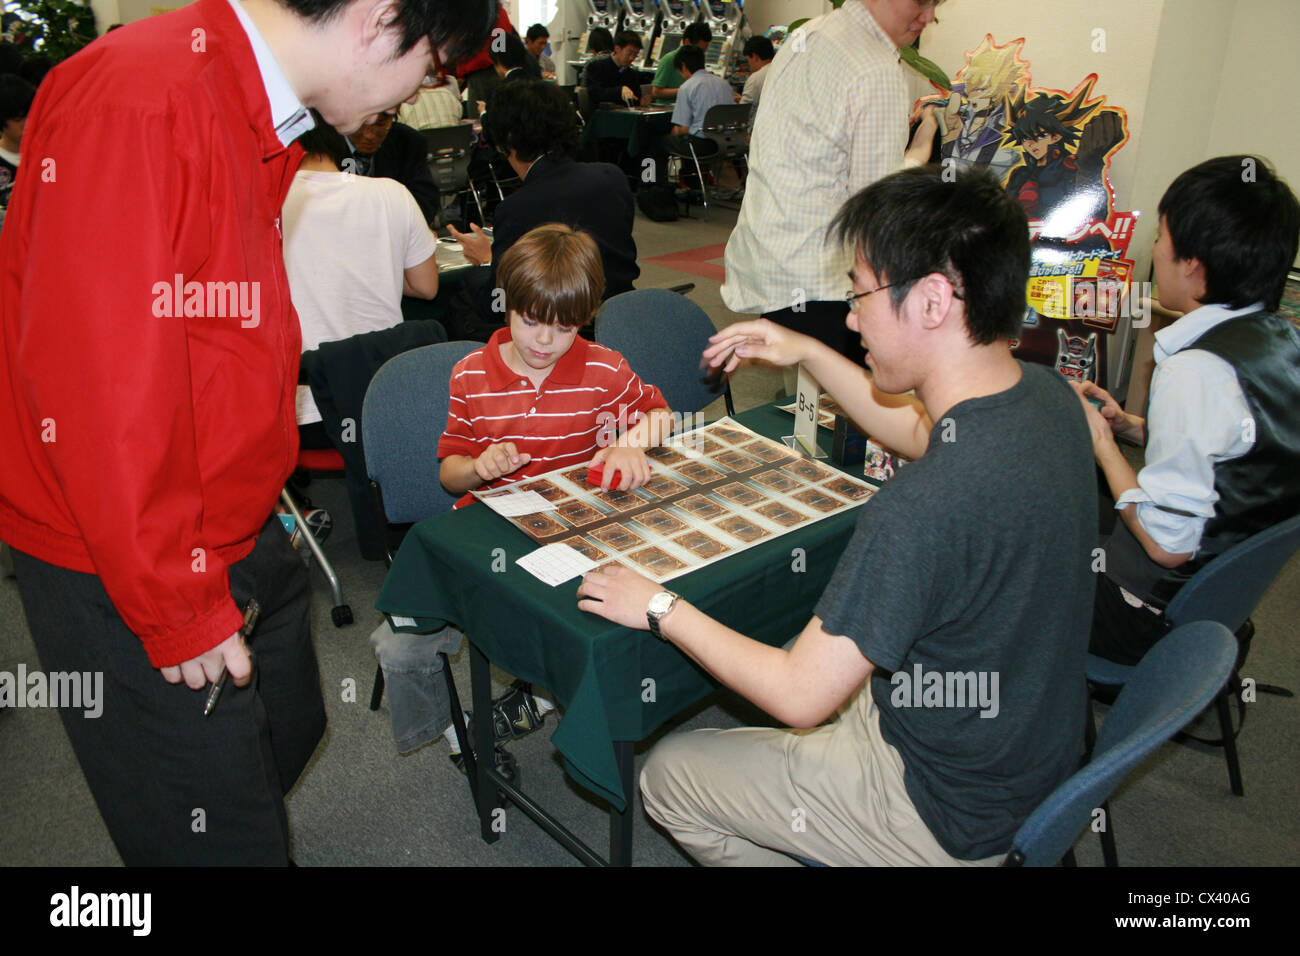 A referee is called to clarify rule of Yugioh card game between eight year old American boy and Japanese adult during - Stock Image